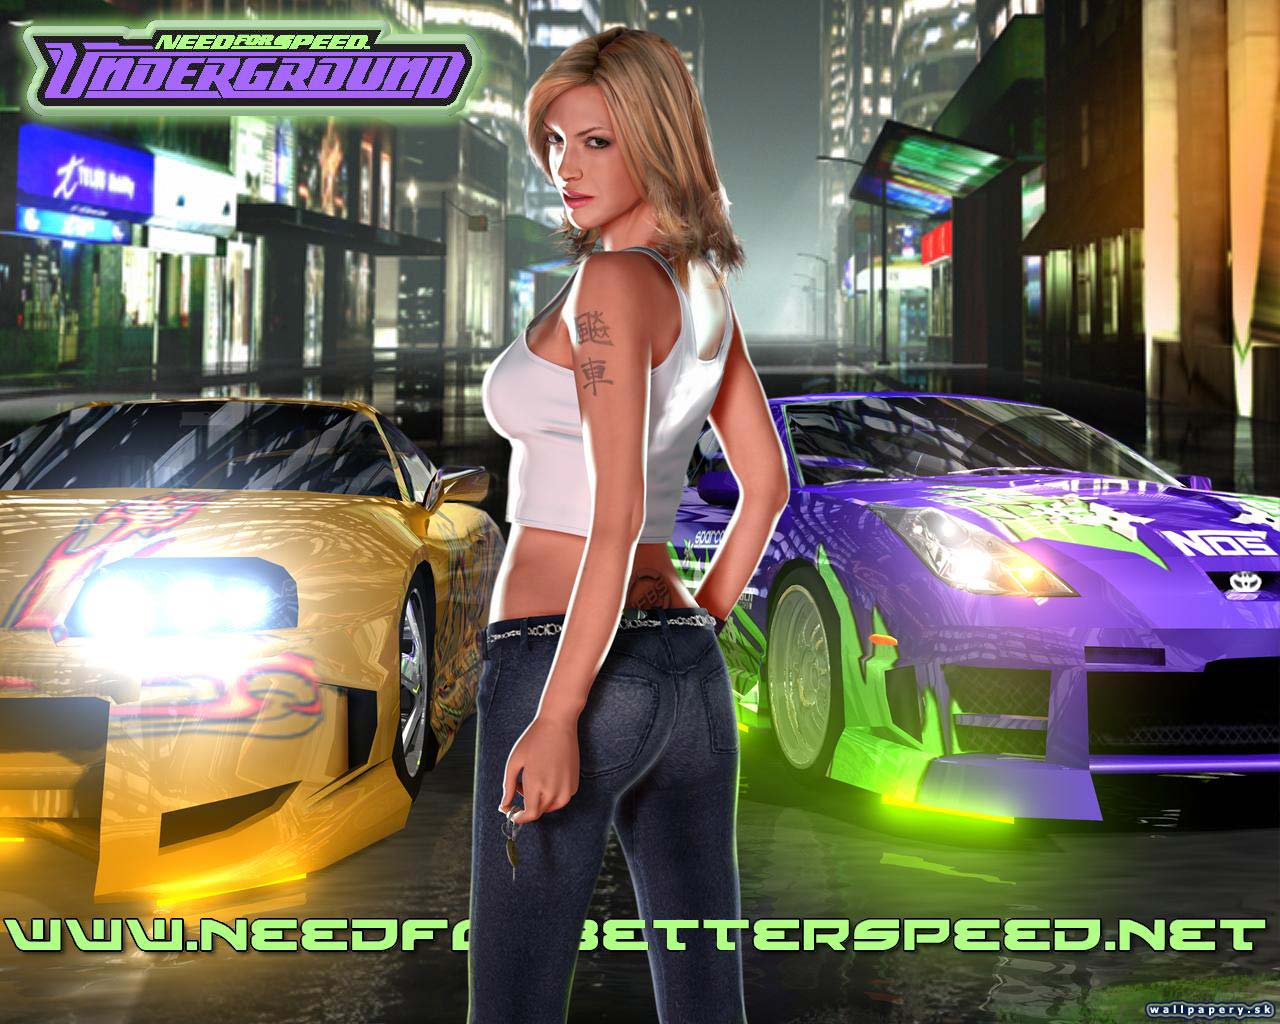 Need for speed underground 2 nude mod naked pic